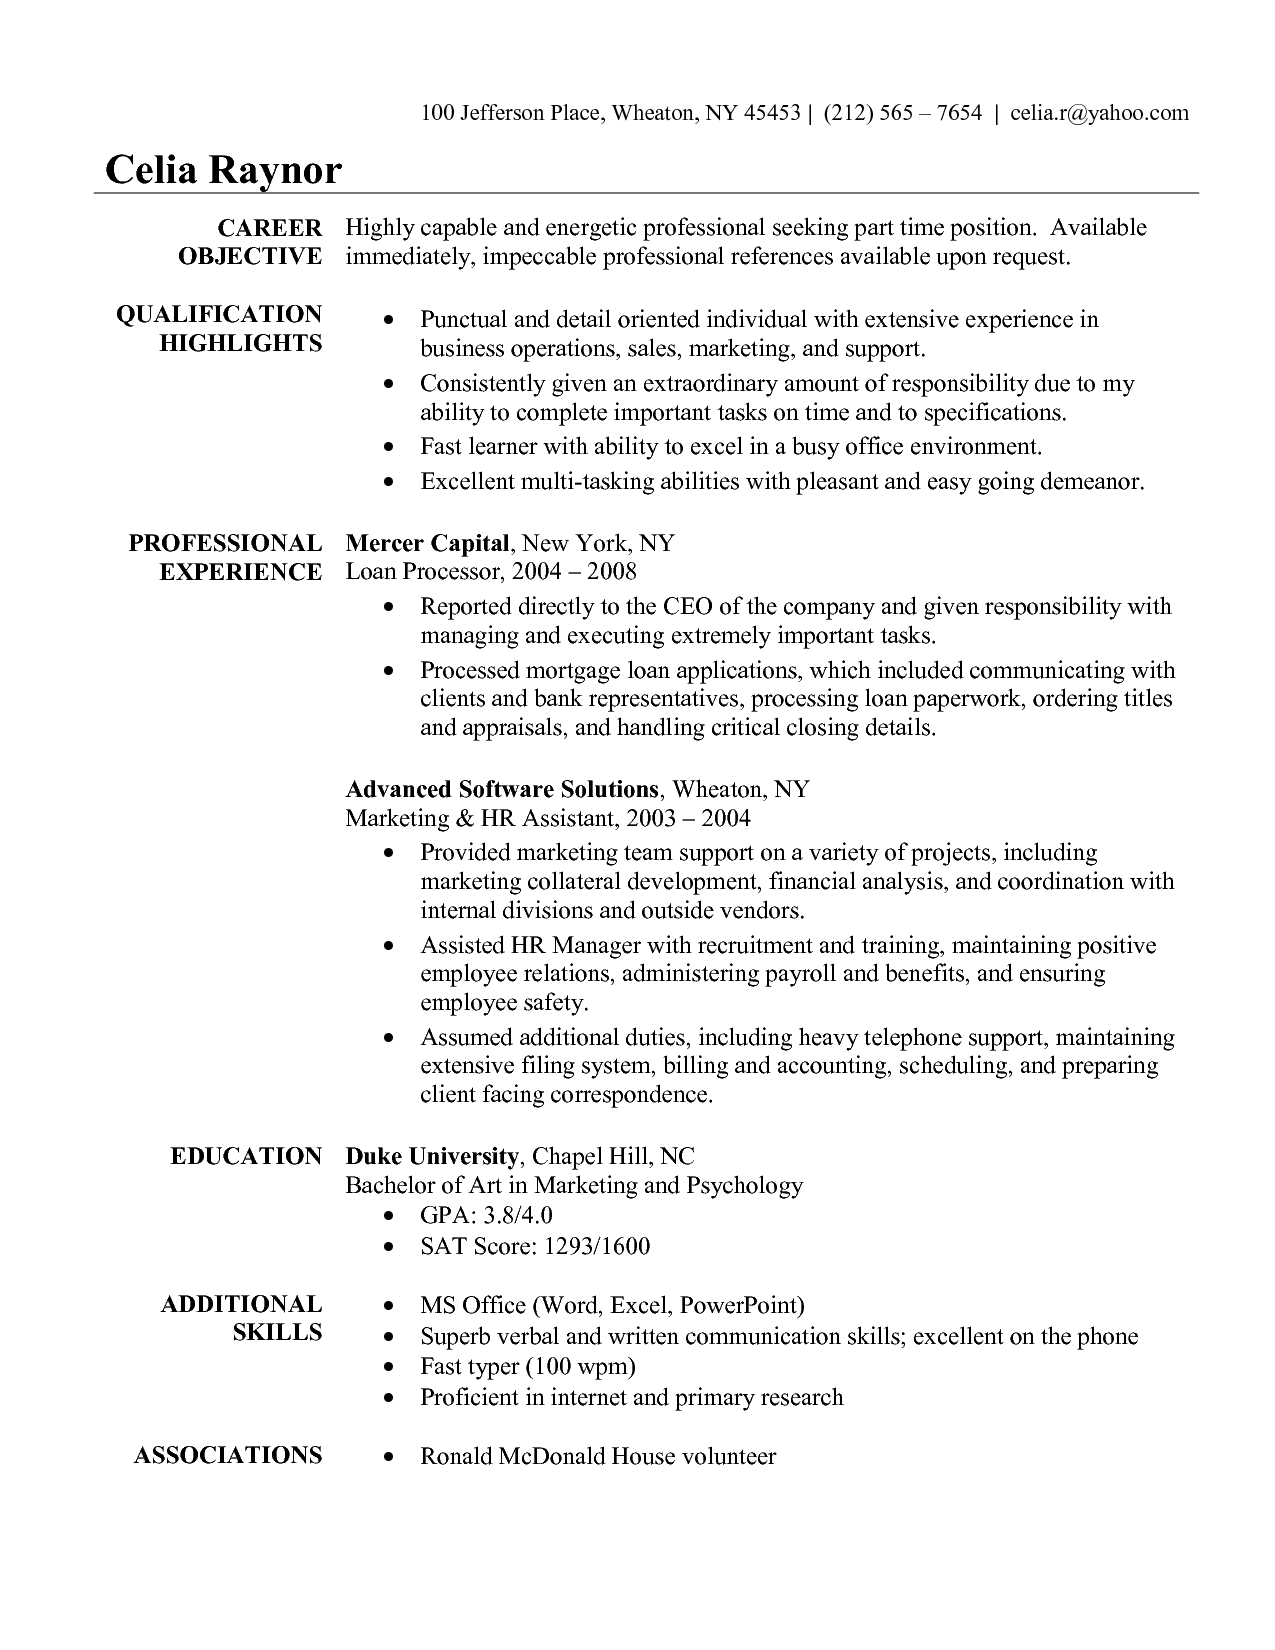 Certified Medical Assistant Resume Sample 10 Sample Resume For Medical Administrative Assistant